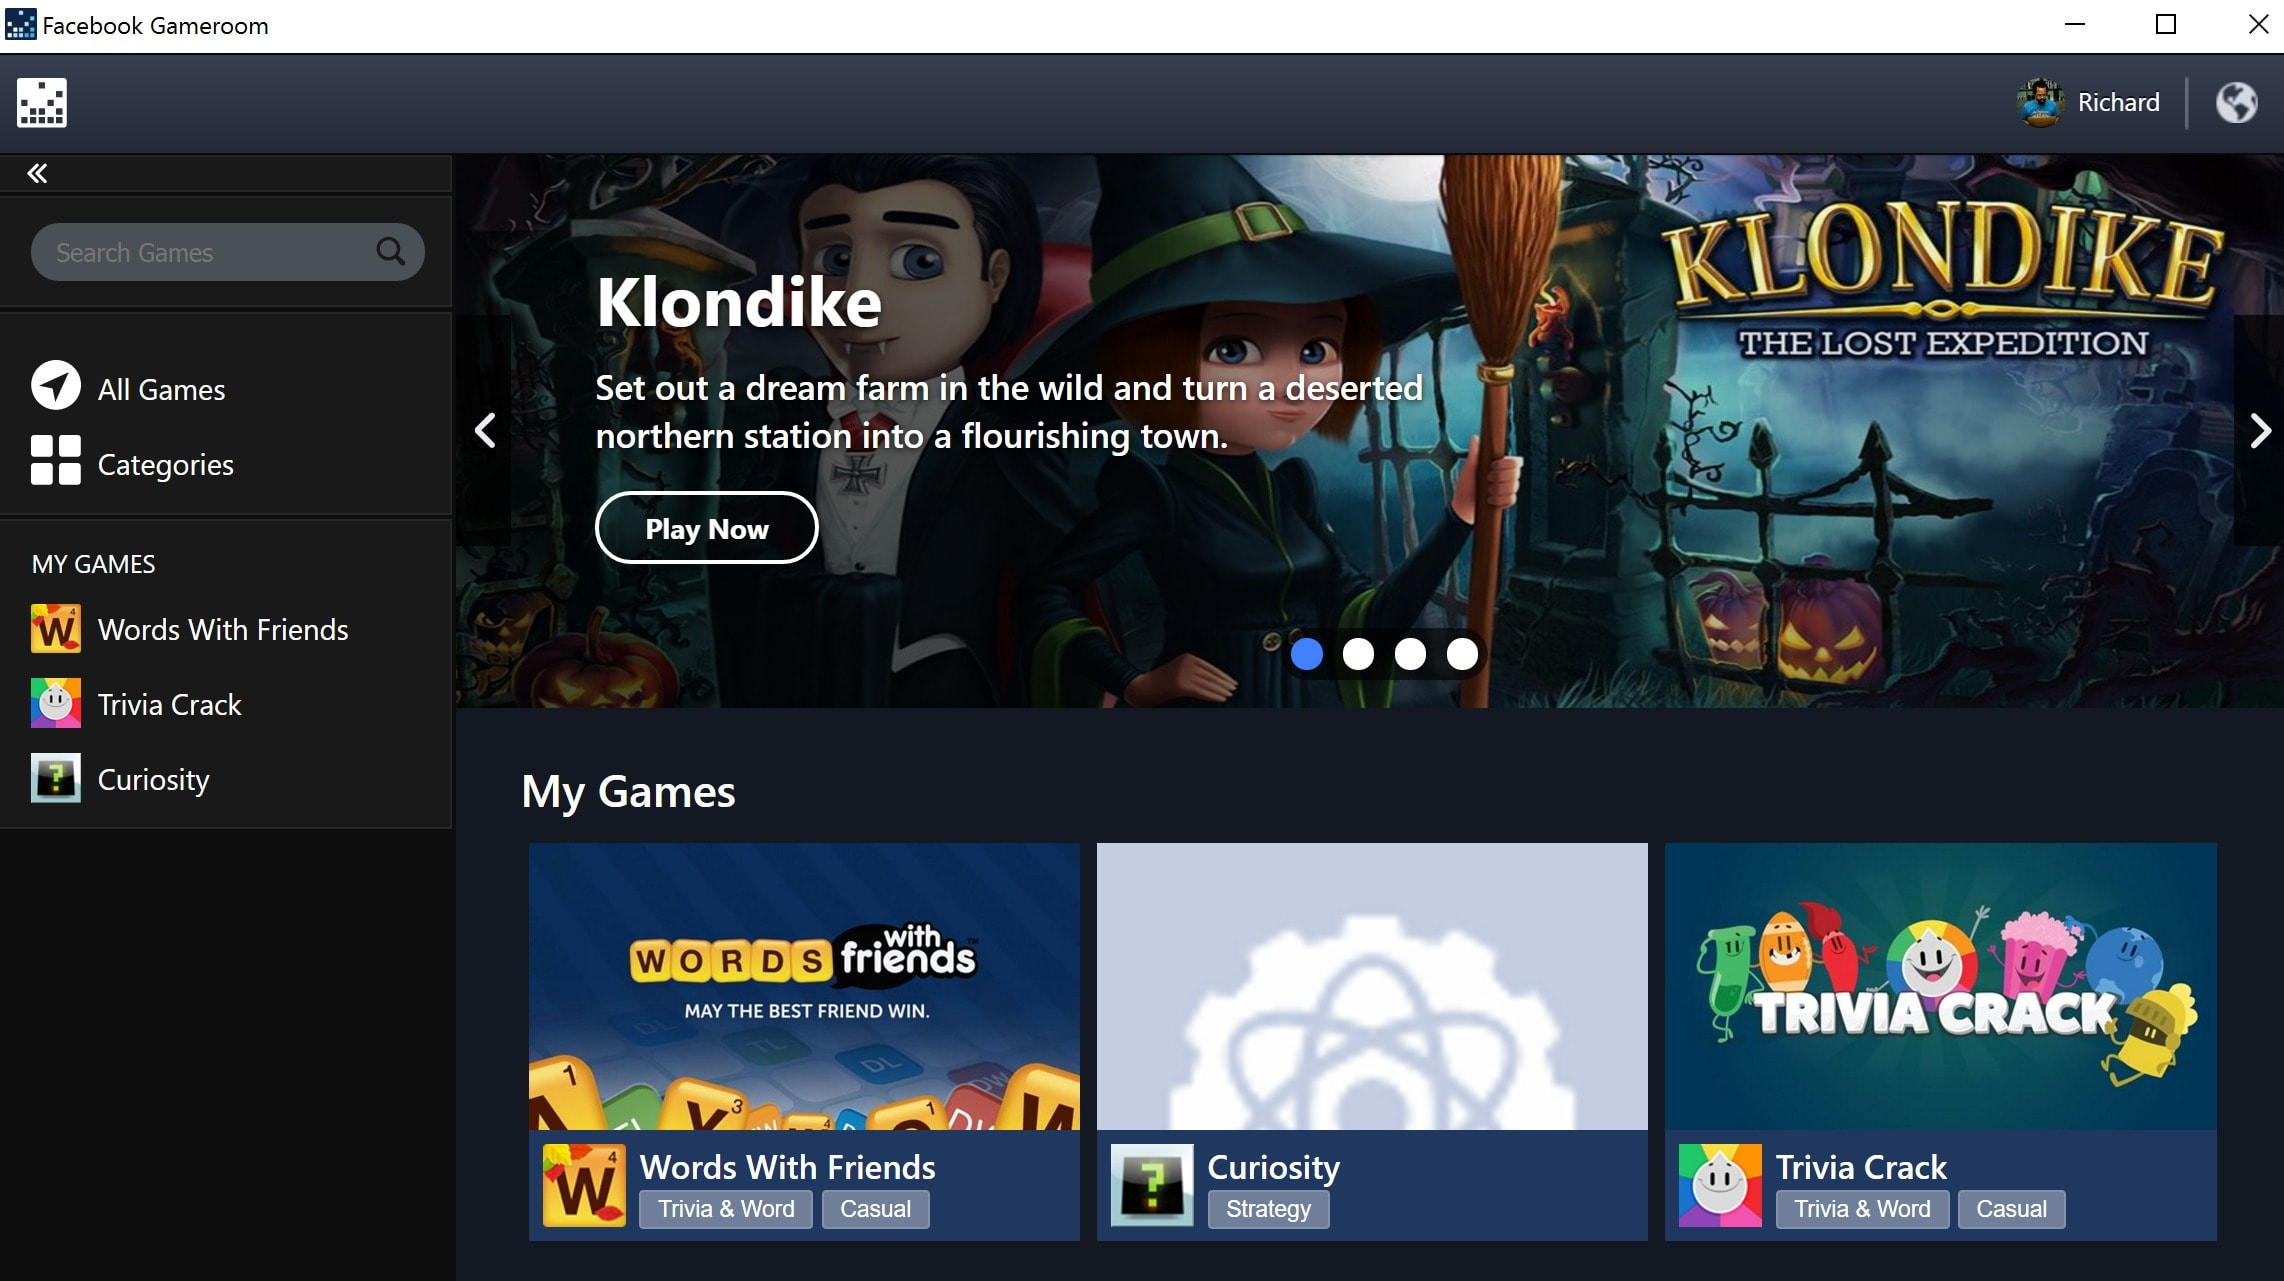 Gameroom is Facebook's antiquated answer to Steam